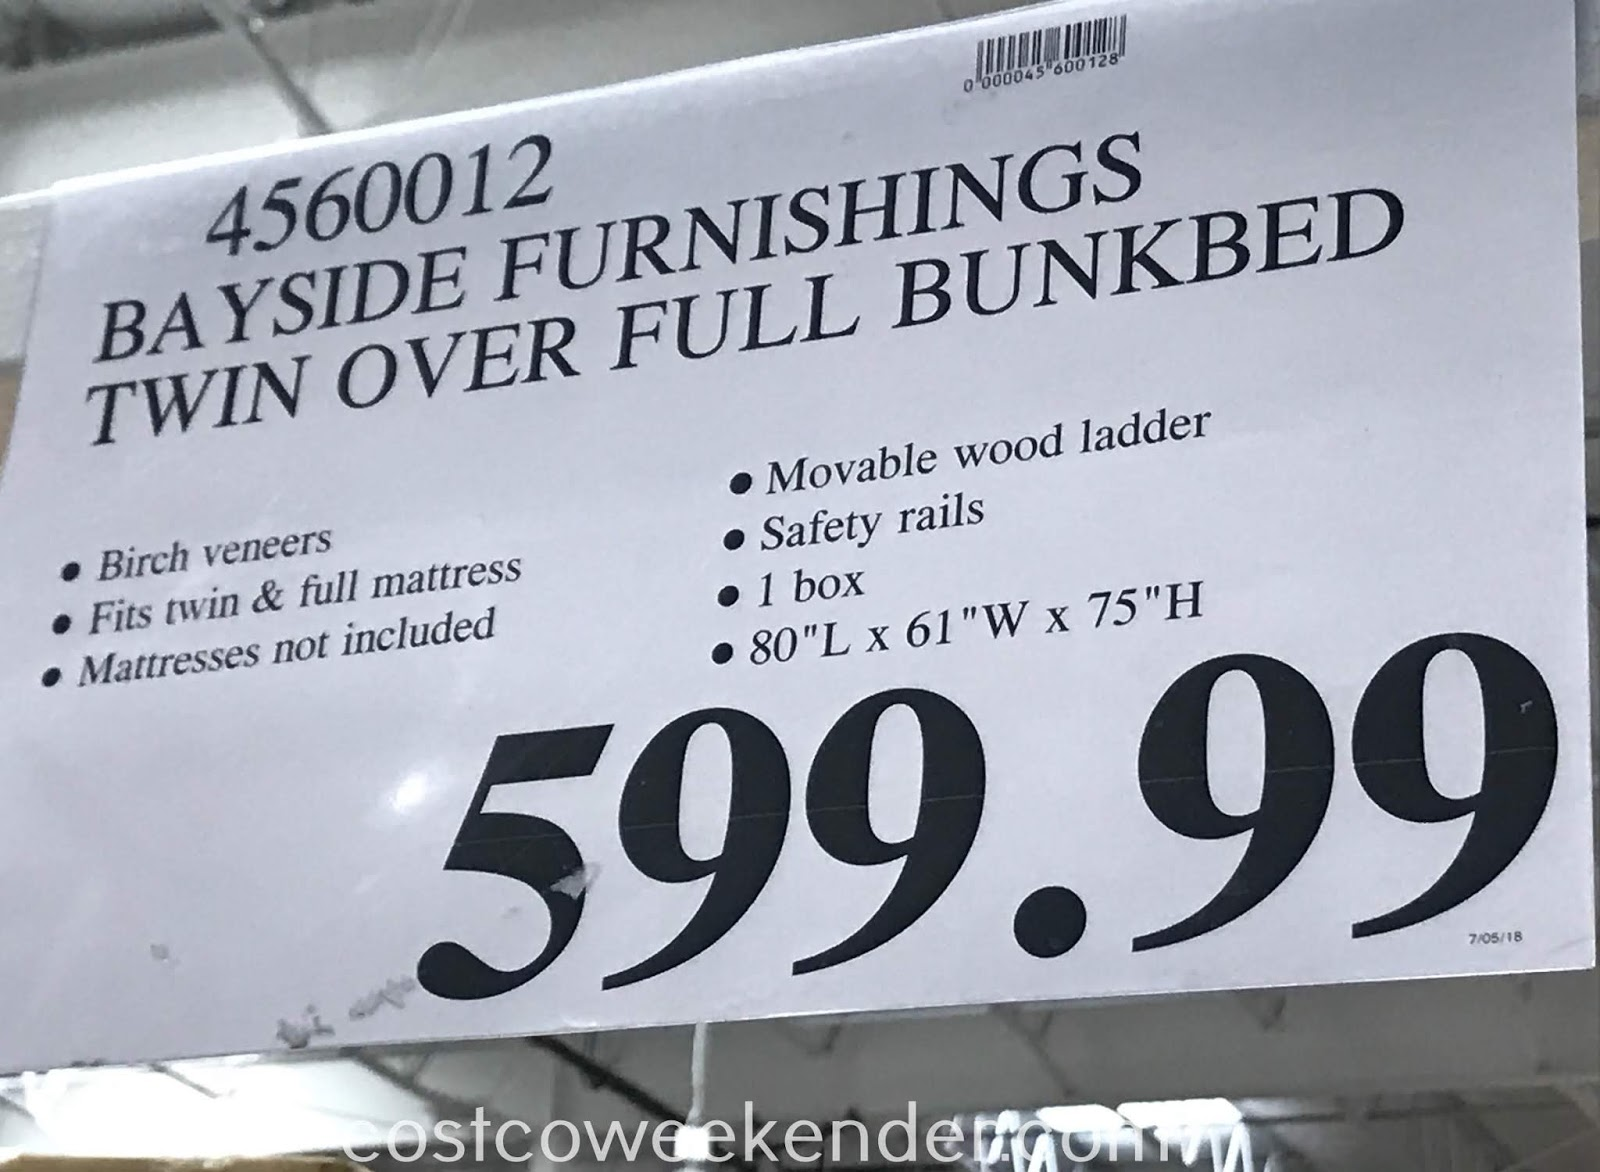 Deal for the Bayside Furnishings Twin Over Full Bunk Bed at Costco